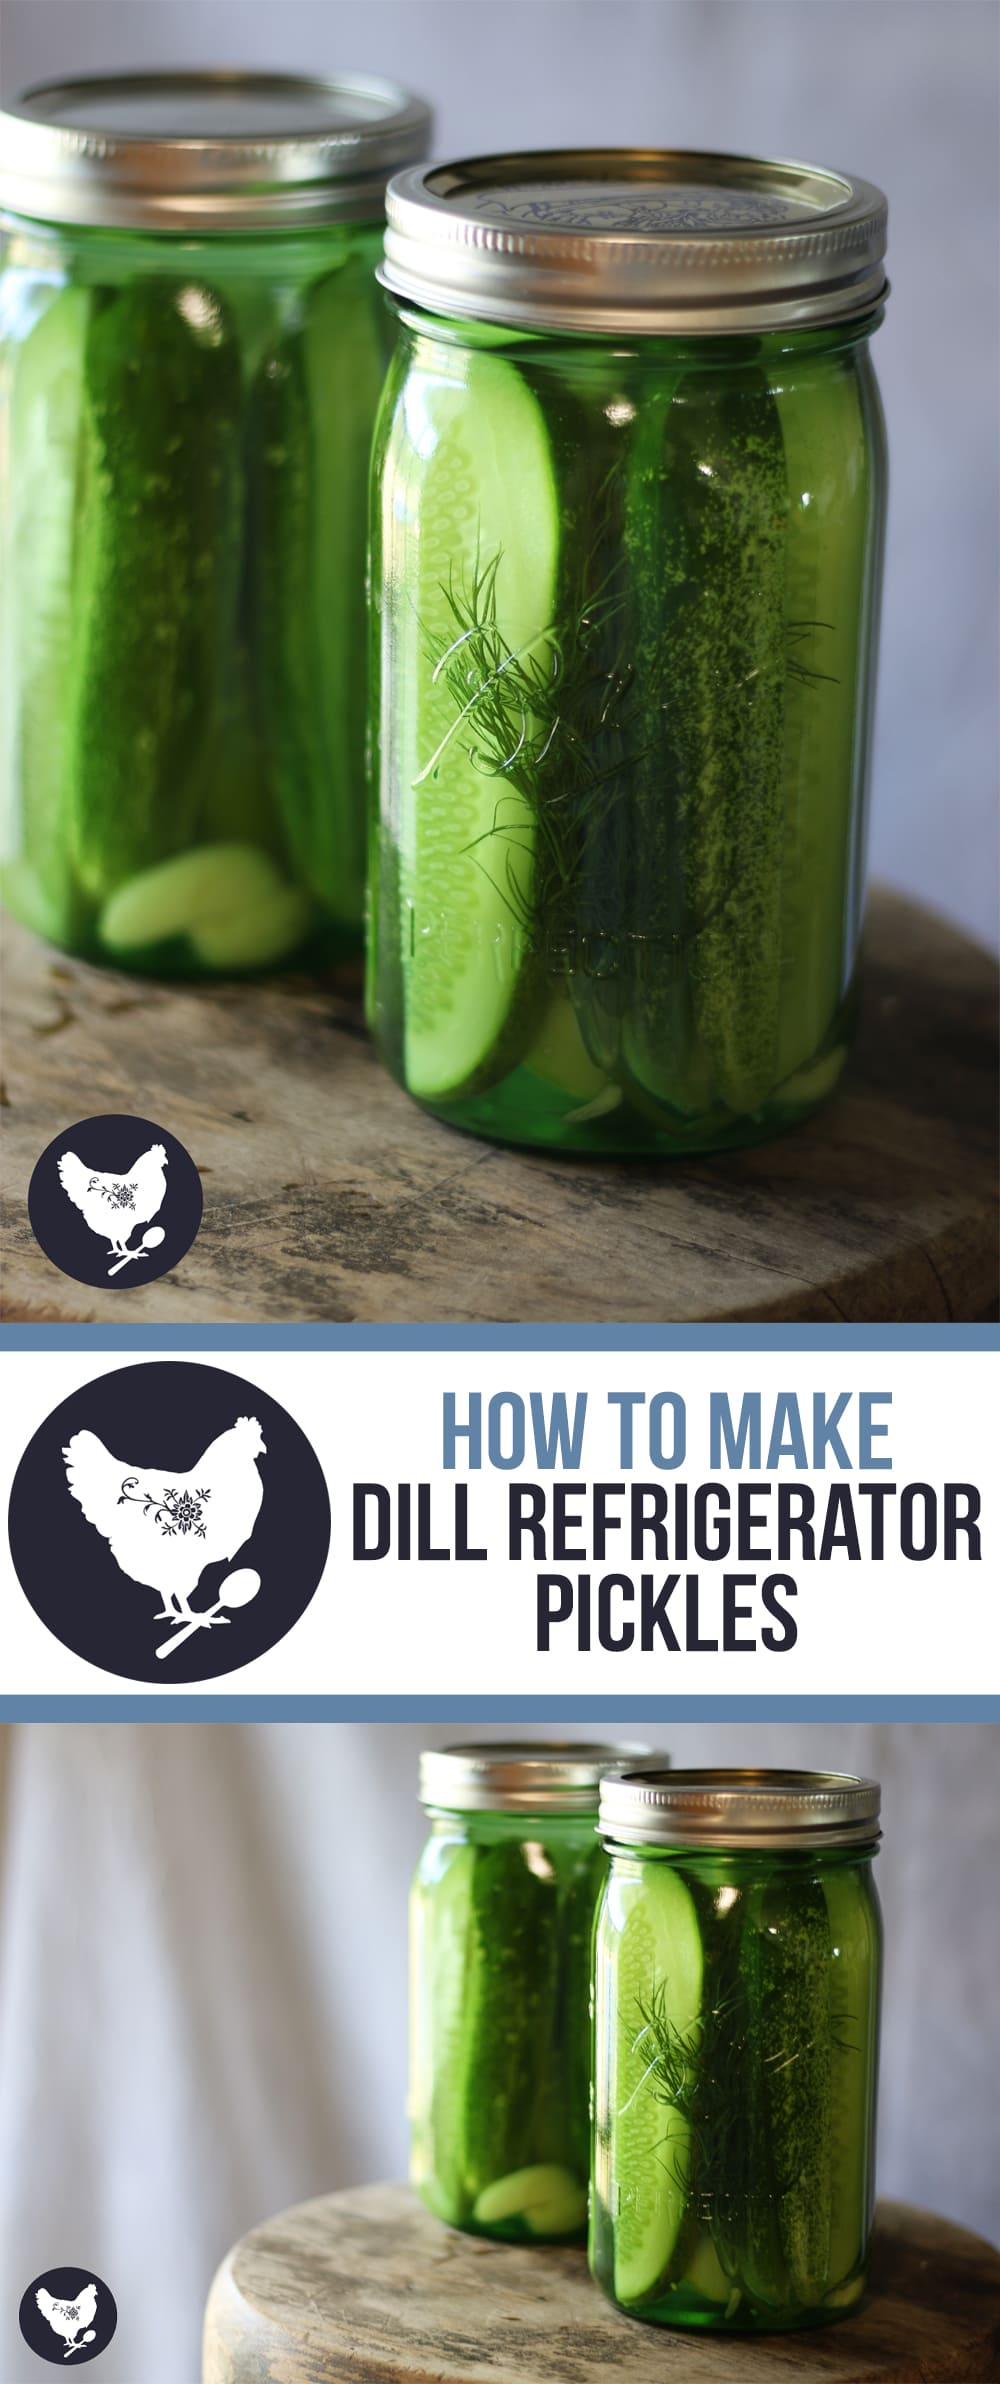 How to Make Dill Refrigerator Pickles - and easy way to enjoy your fresh garden cucumbers! | Get the recipe from Cosmopolitan Cornbread